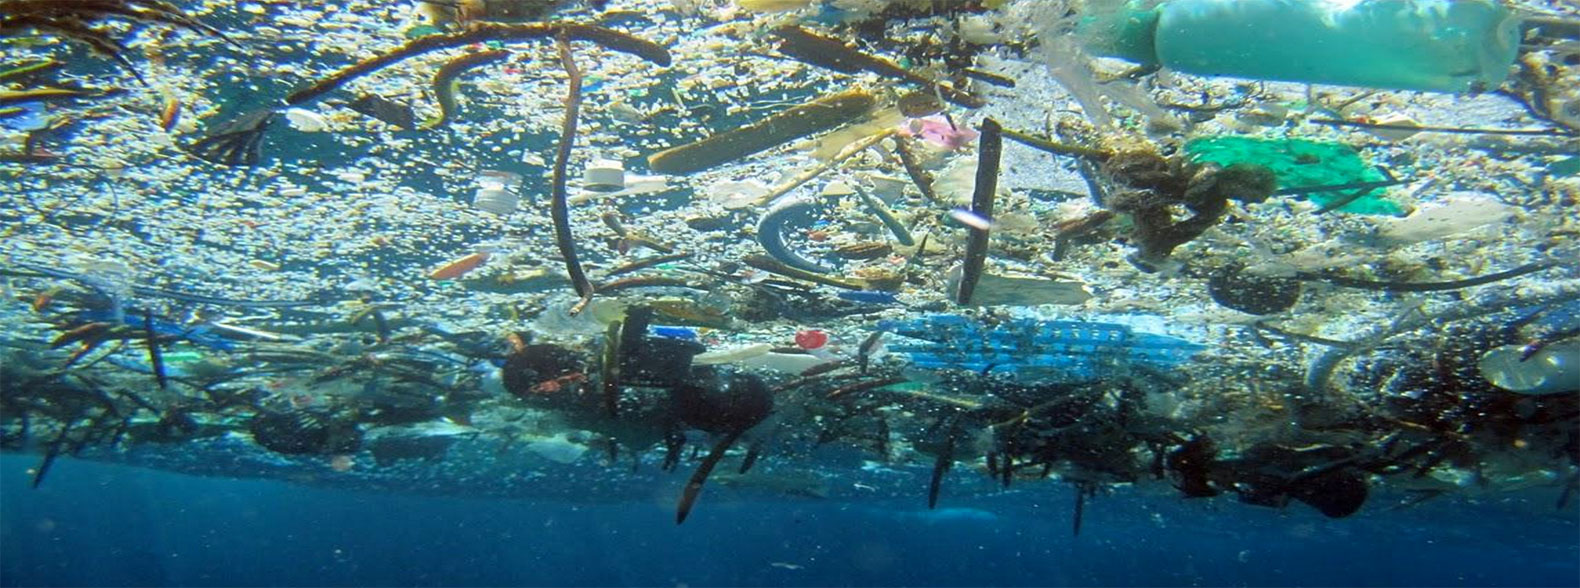 Worldu0027s First Ocean Trash Recon Mission Is Complete U2013 And The Results Are  Way Worse Than We Thought